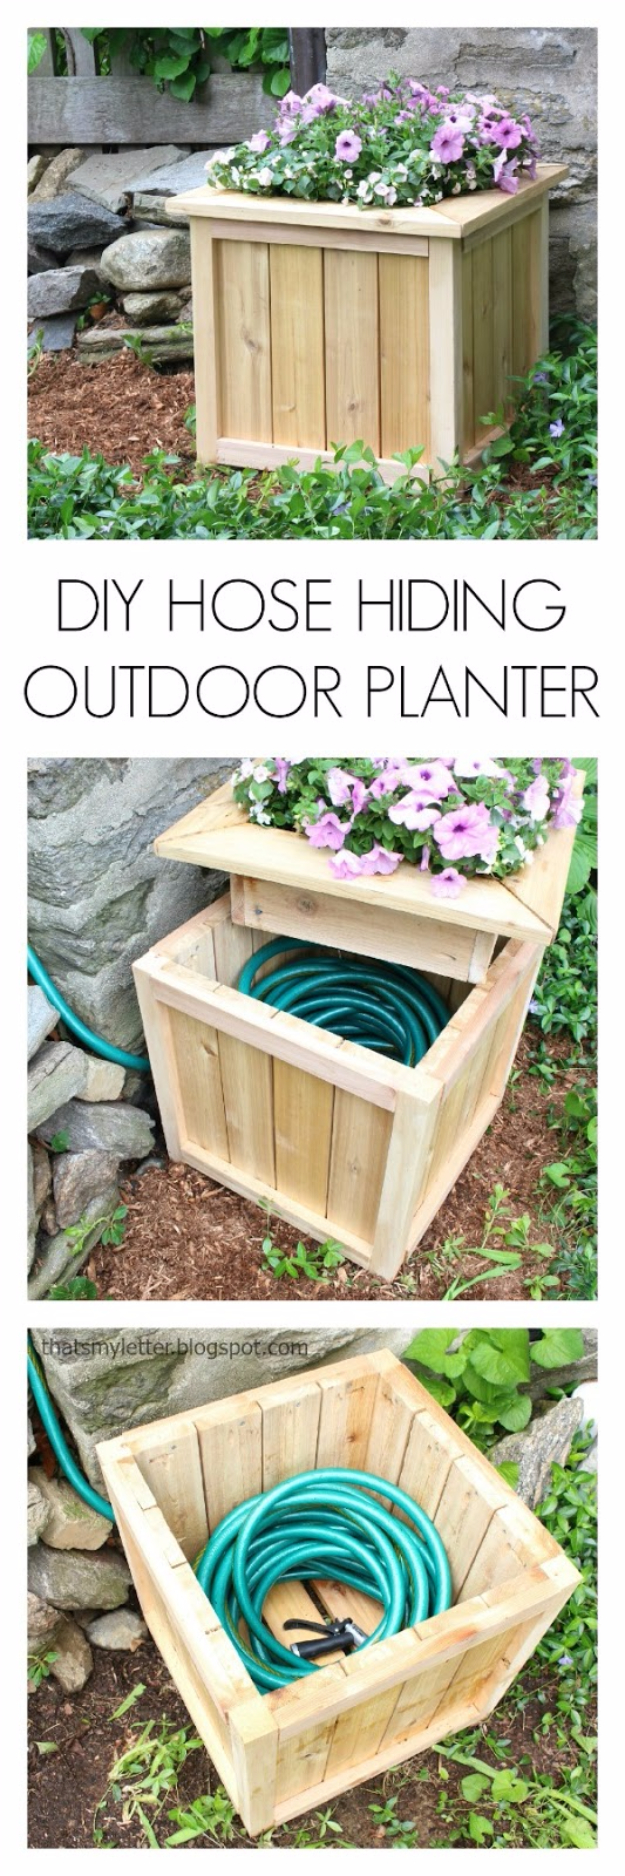 DIY Landscaping Hacks - DIY Hose Hiding Outdoor Planter - Easy Ways to Make Your Yard and Home Look Awesome in Fall, Winter, Spring and Fall. Backyard Projects for Beginning Gardeners and Lawns - Tutorials and Step by Step Instructions